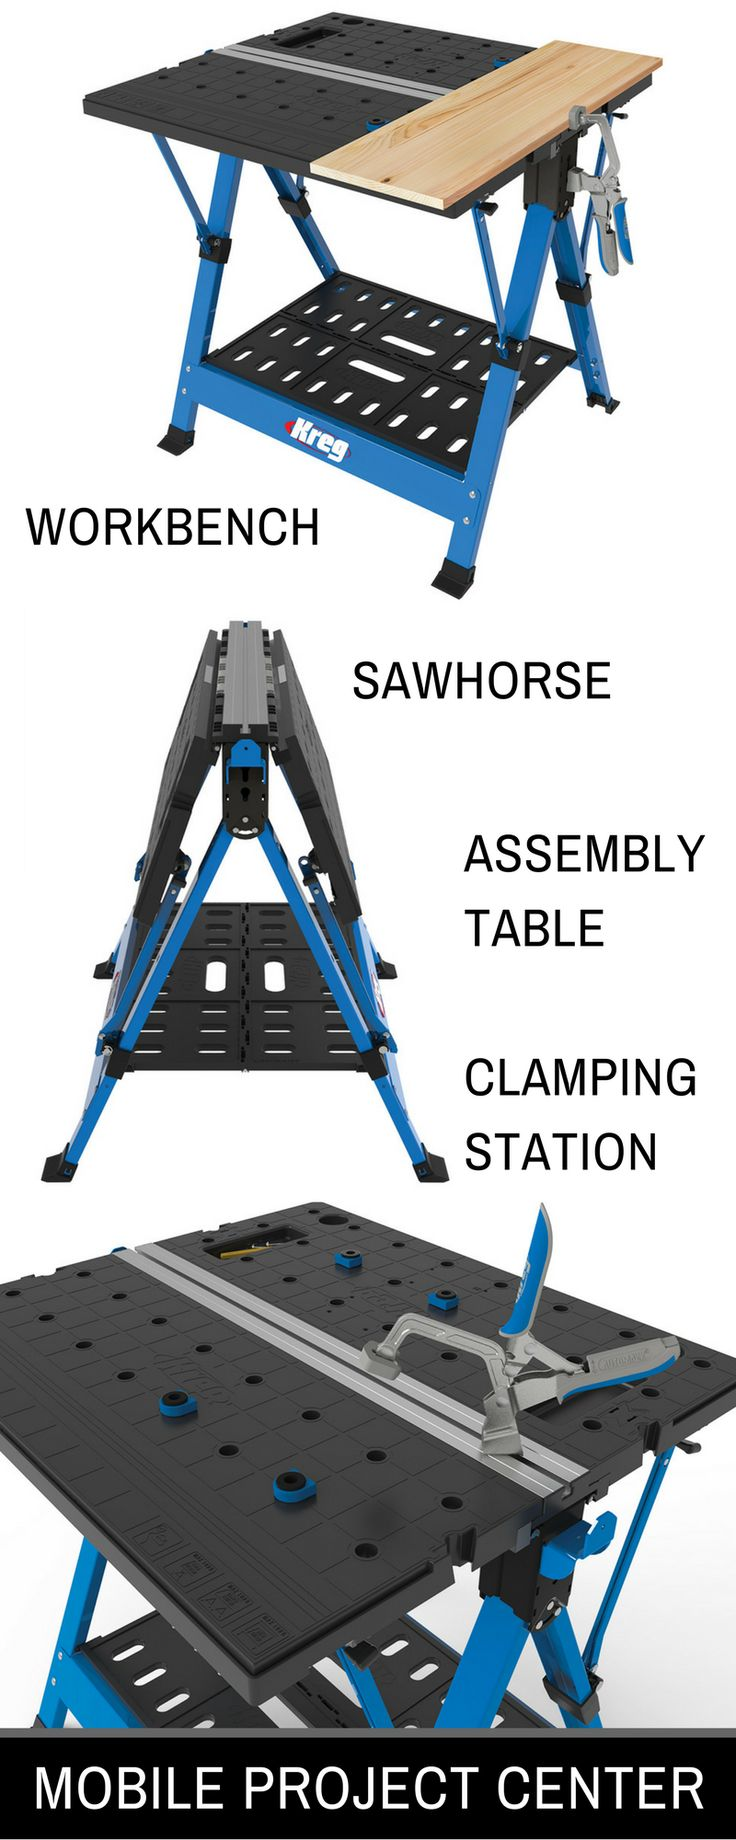 The Mobile Project Center provides a portable workspace that can be used for a wide variety of project tasks. In one mode, it's a sturdy sawhorse that's great for supporting long boards as you cut. Flip the large tables into position and this product offers the features you'd expect to find in a high-end stationary workbench. The Clamp Trak and included Bench Clamp with Automaxx® Auto-Adjust Technology provide multiple ways to hold workpieces.